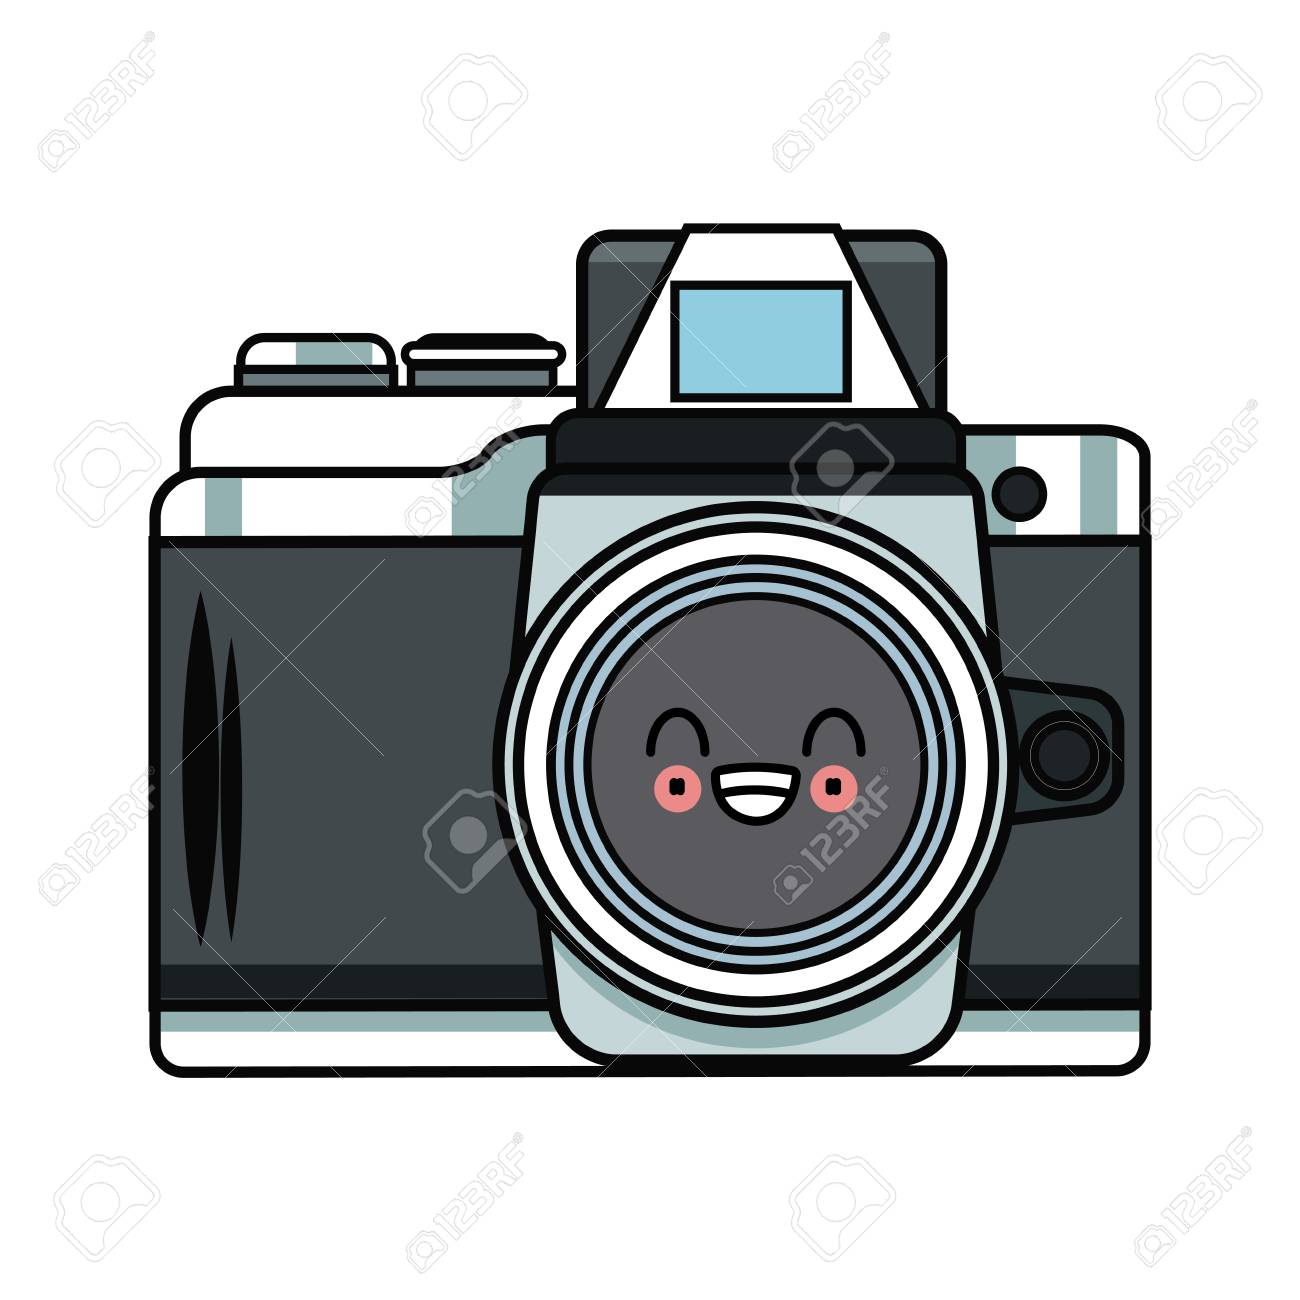 Vintage Camera Cartoon Graphic Royalty Free Cliparts Vectors And Stock Illustration Image 89171160